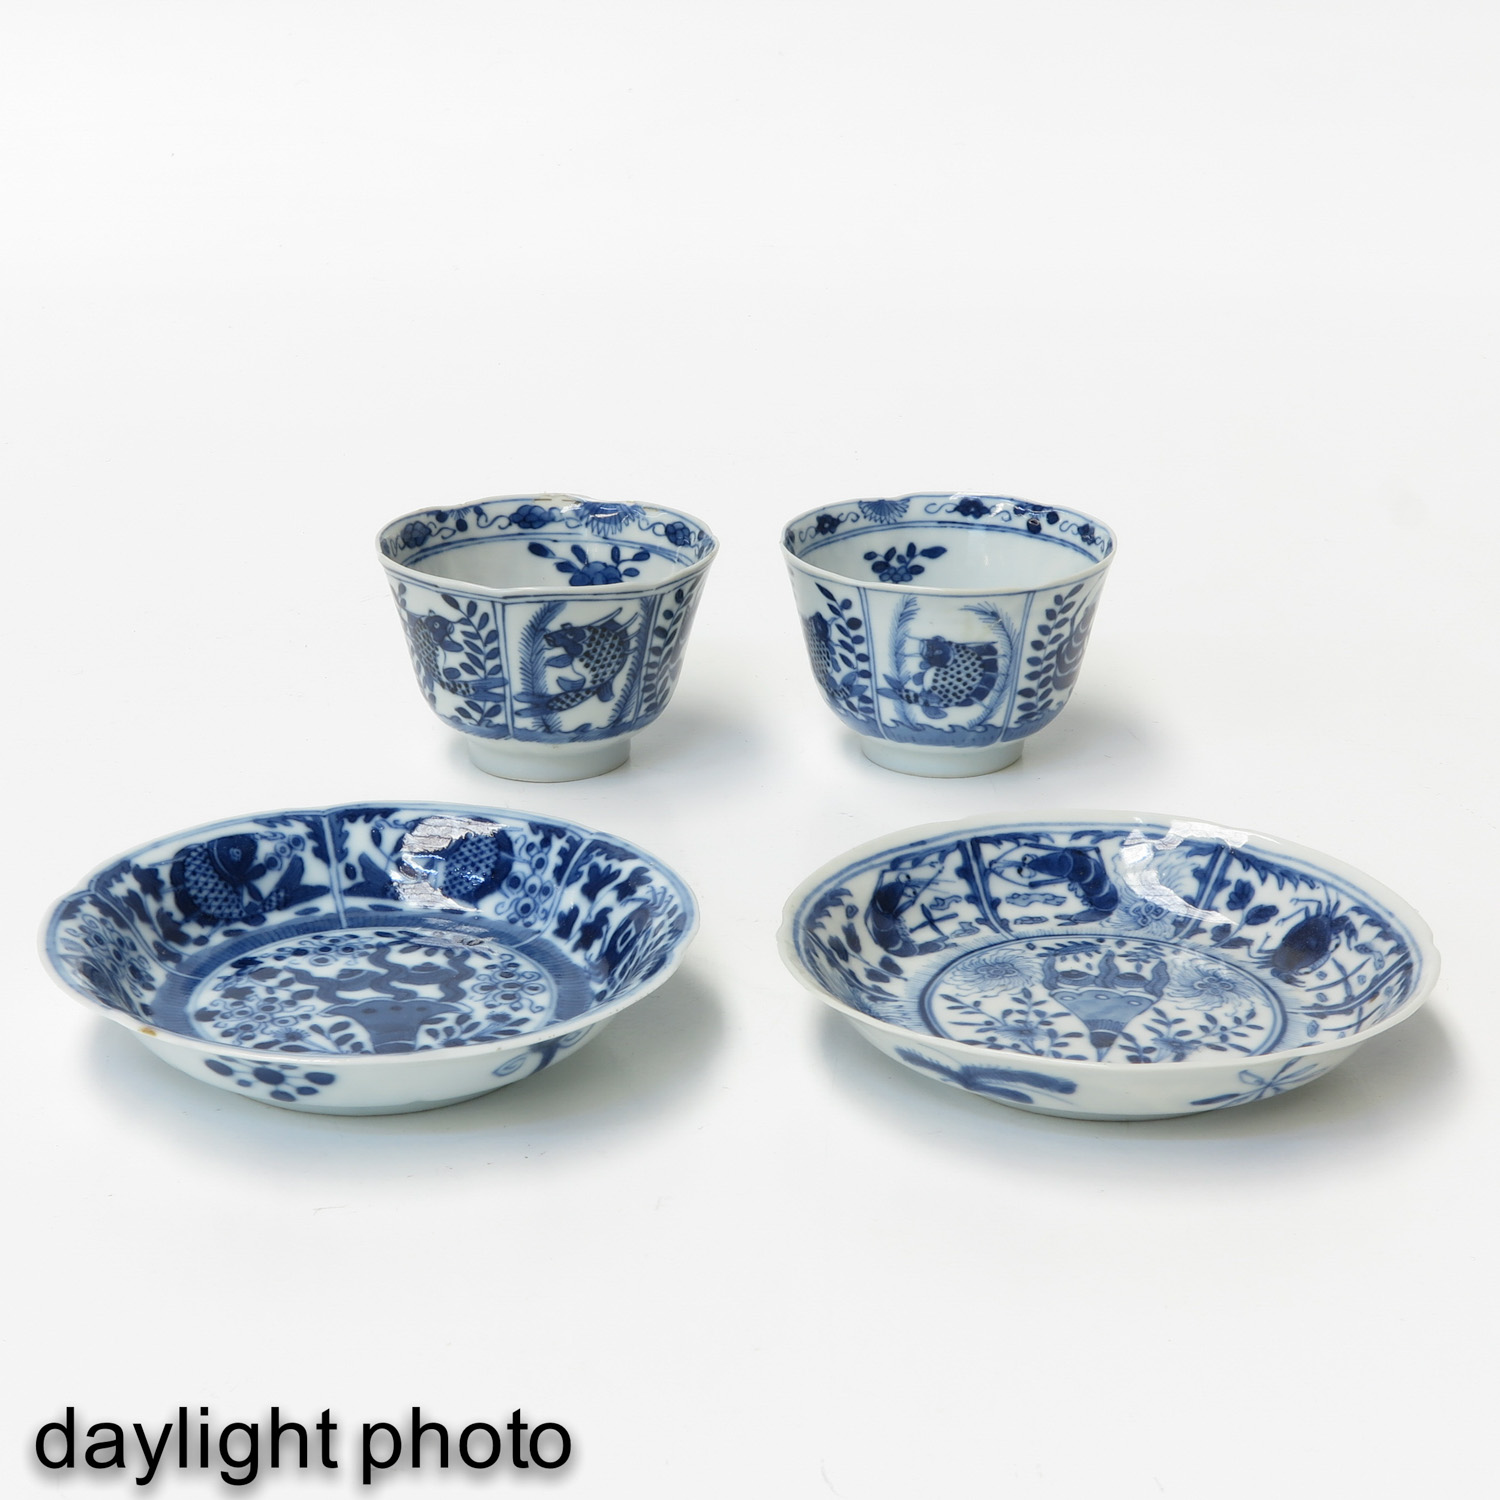 A Pair of Blue and White Cups and Saucers - Image 7 of 9